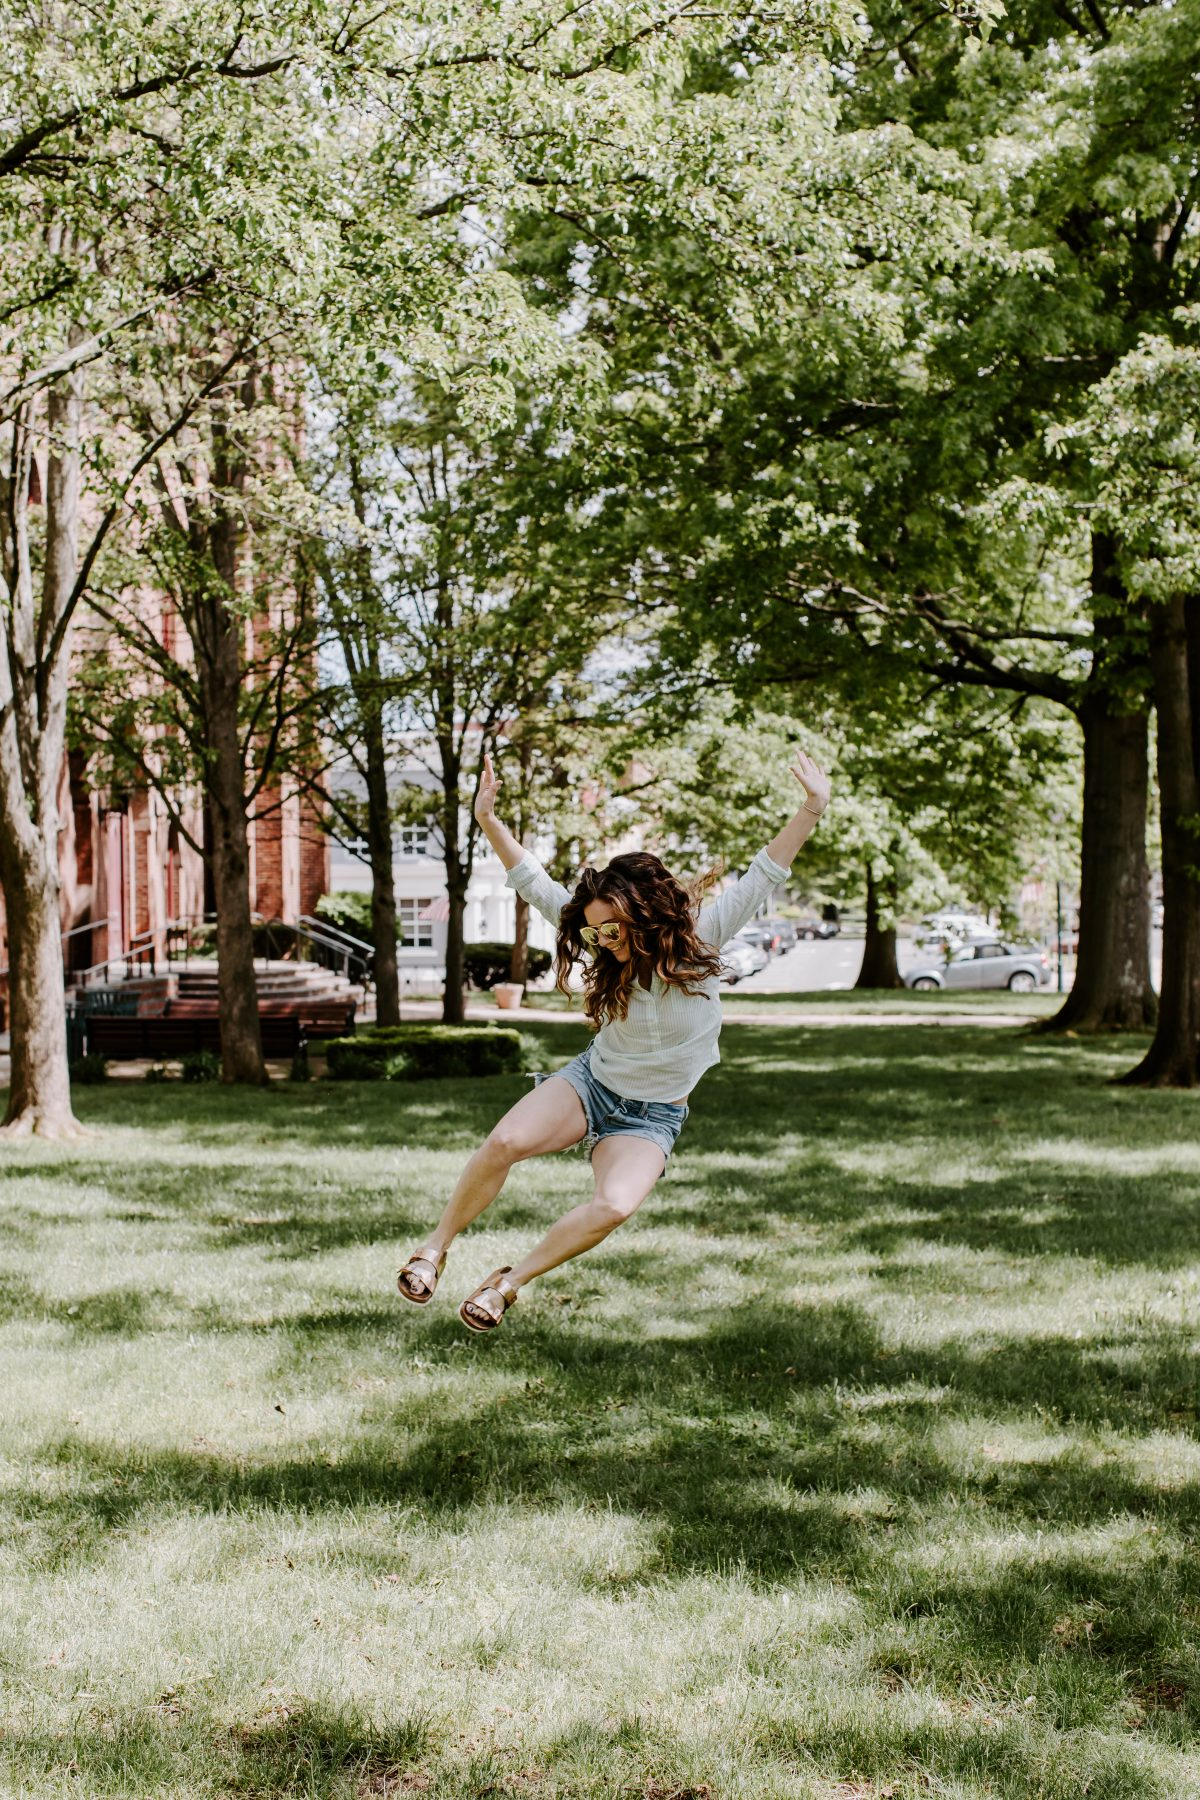 Woman leaping in the air clicking feet together wearing button up shirt and sunglasses and gold sandals